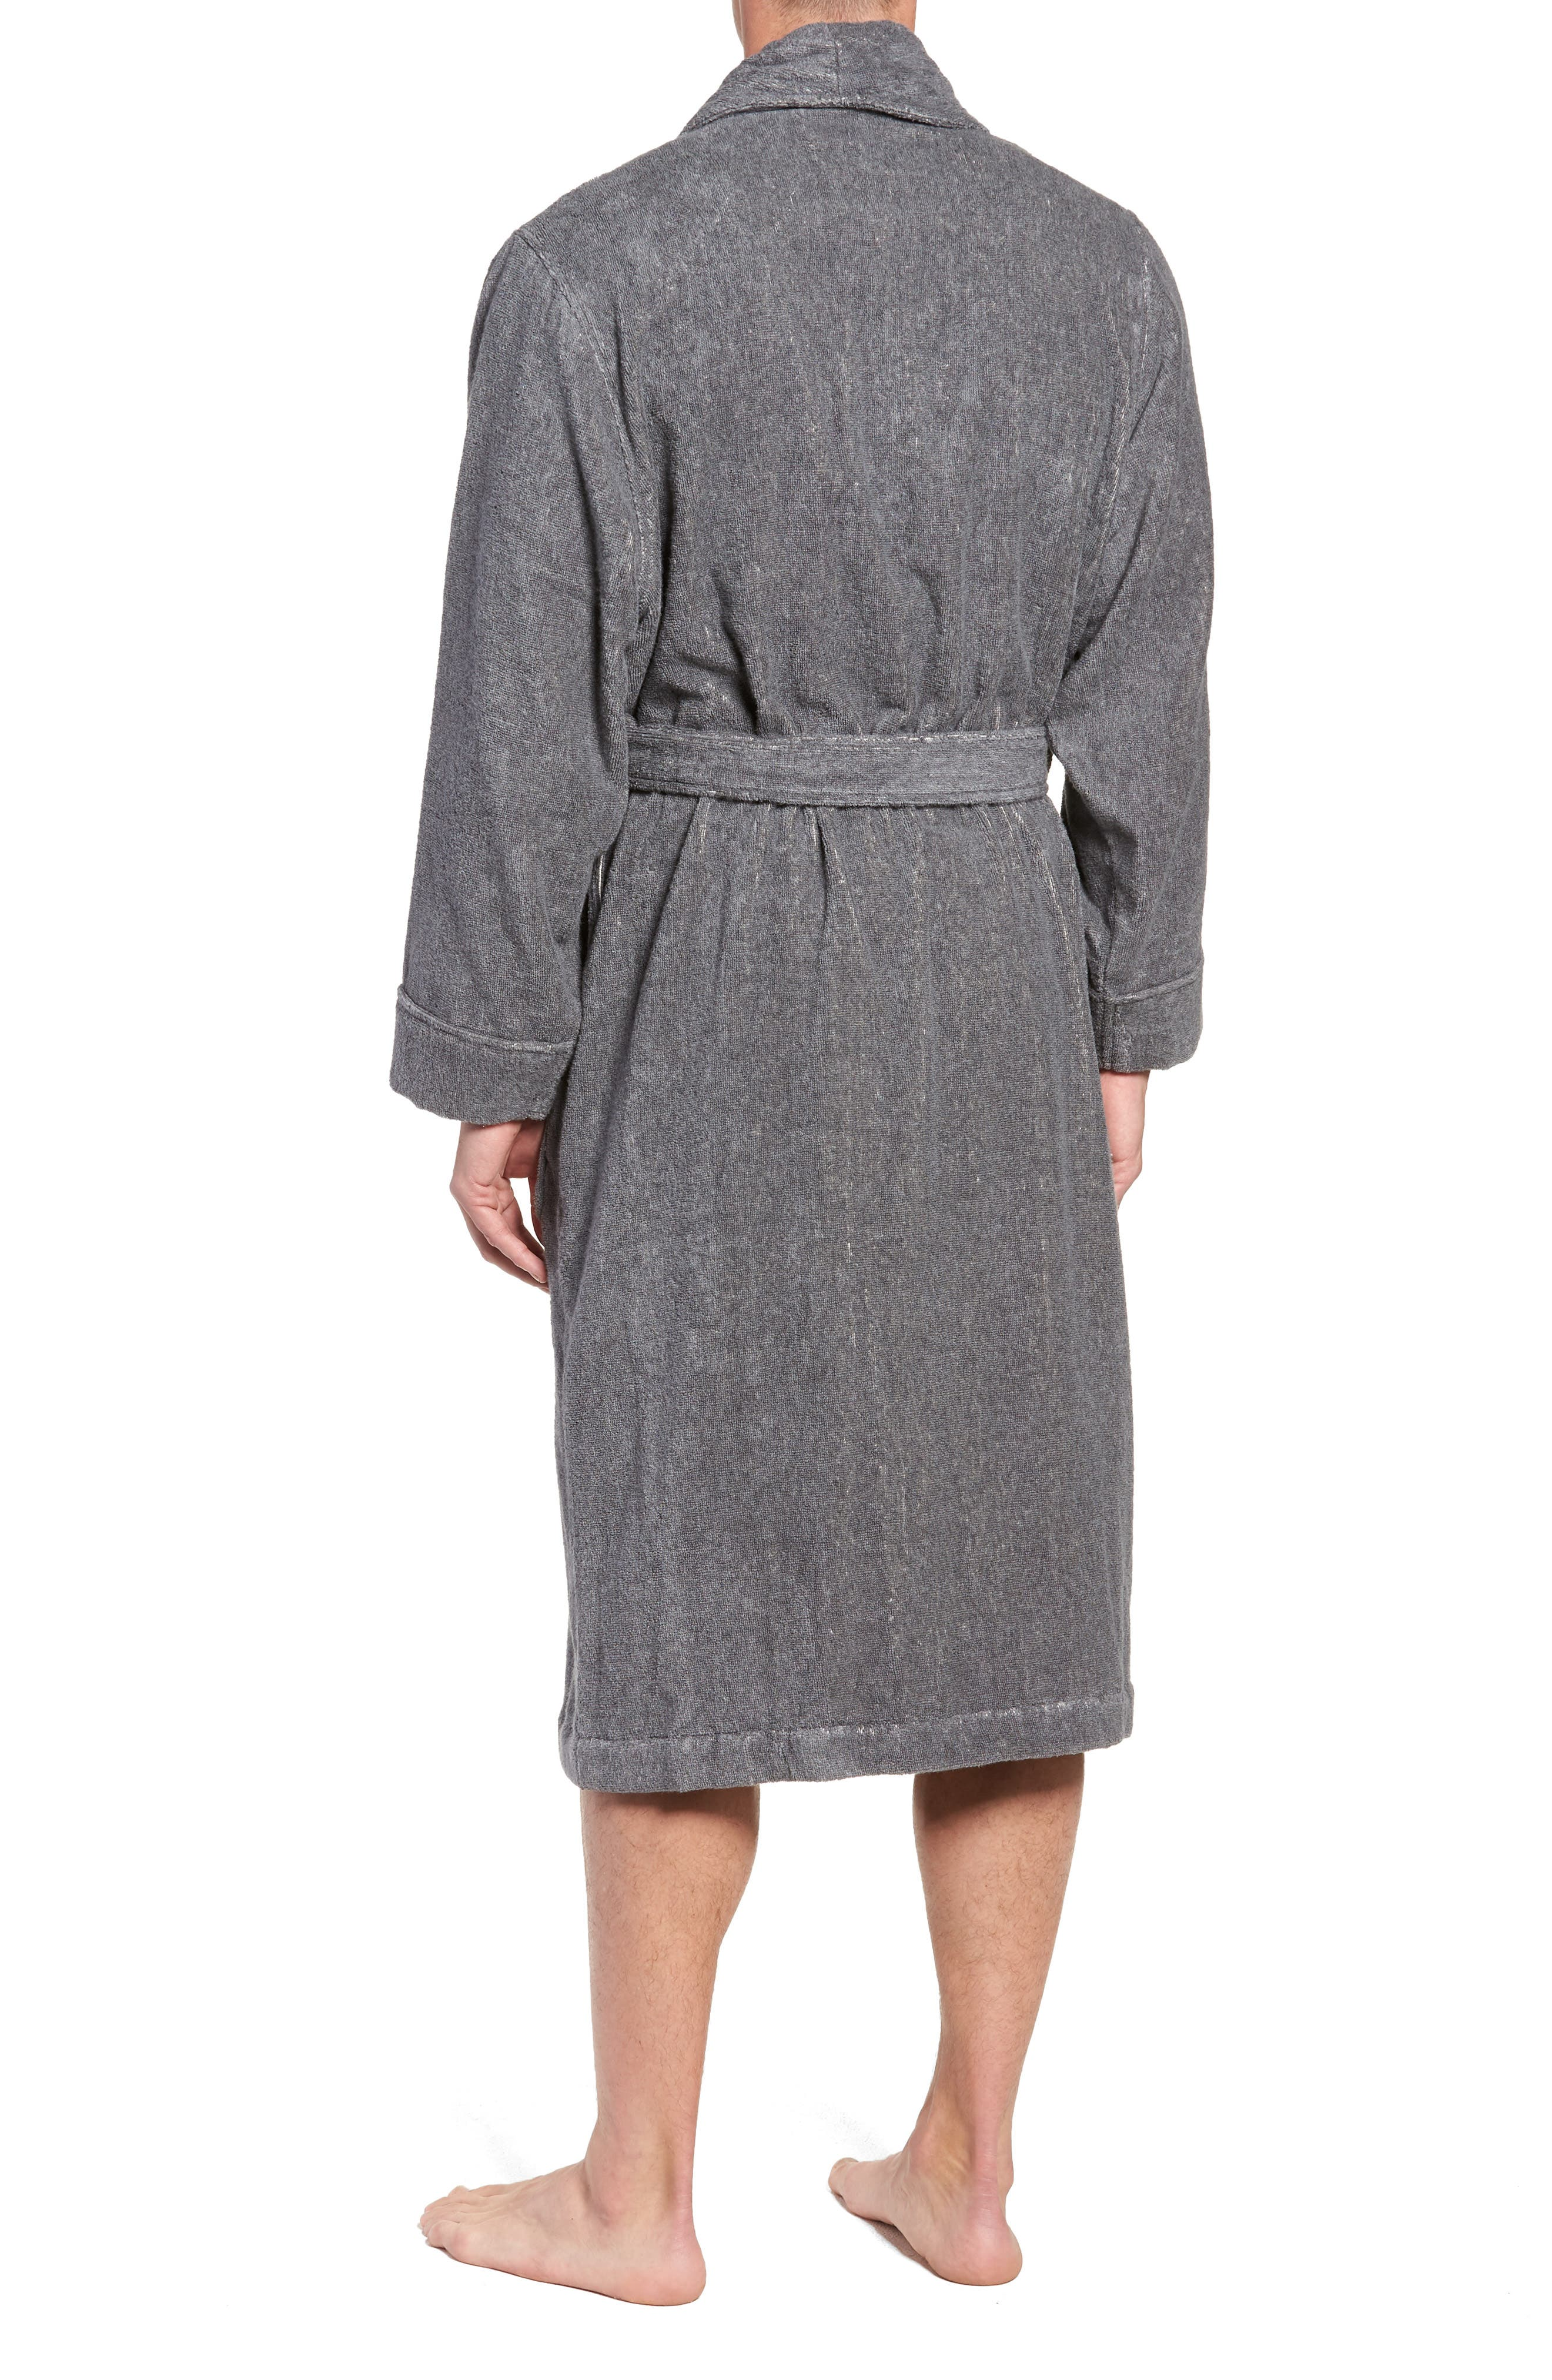 Hydro Cotton Terry Robe,                             Alternate thumbnail 2, color,                             CHARCOAL HEATHER